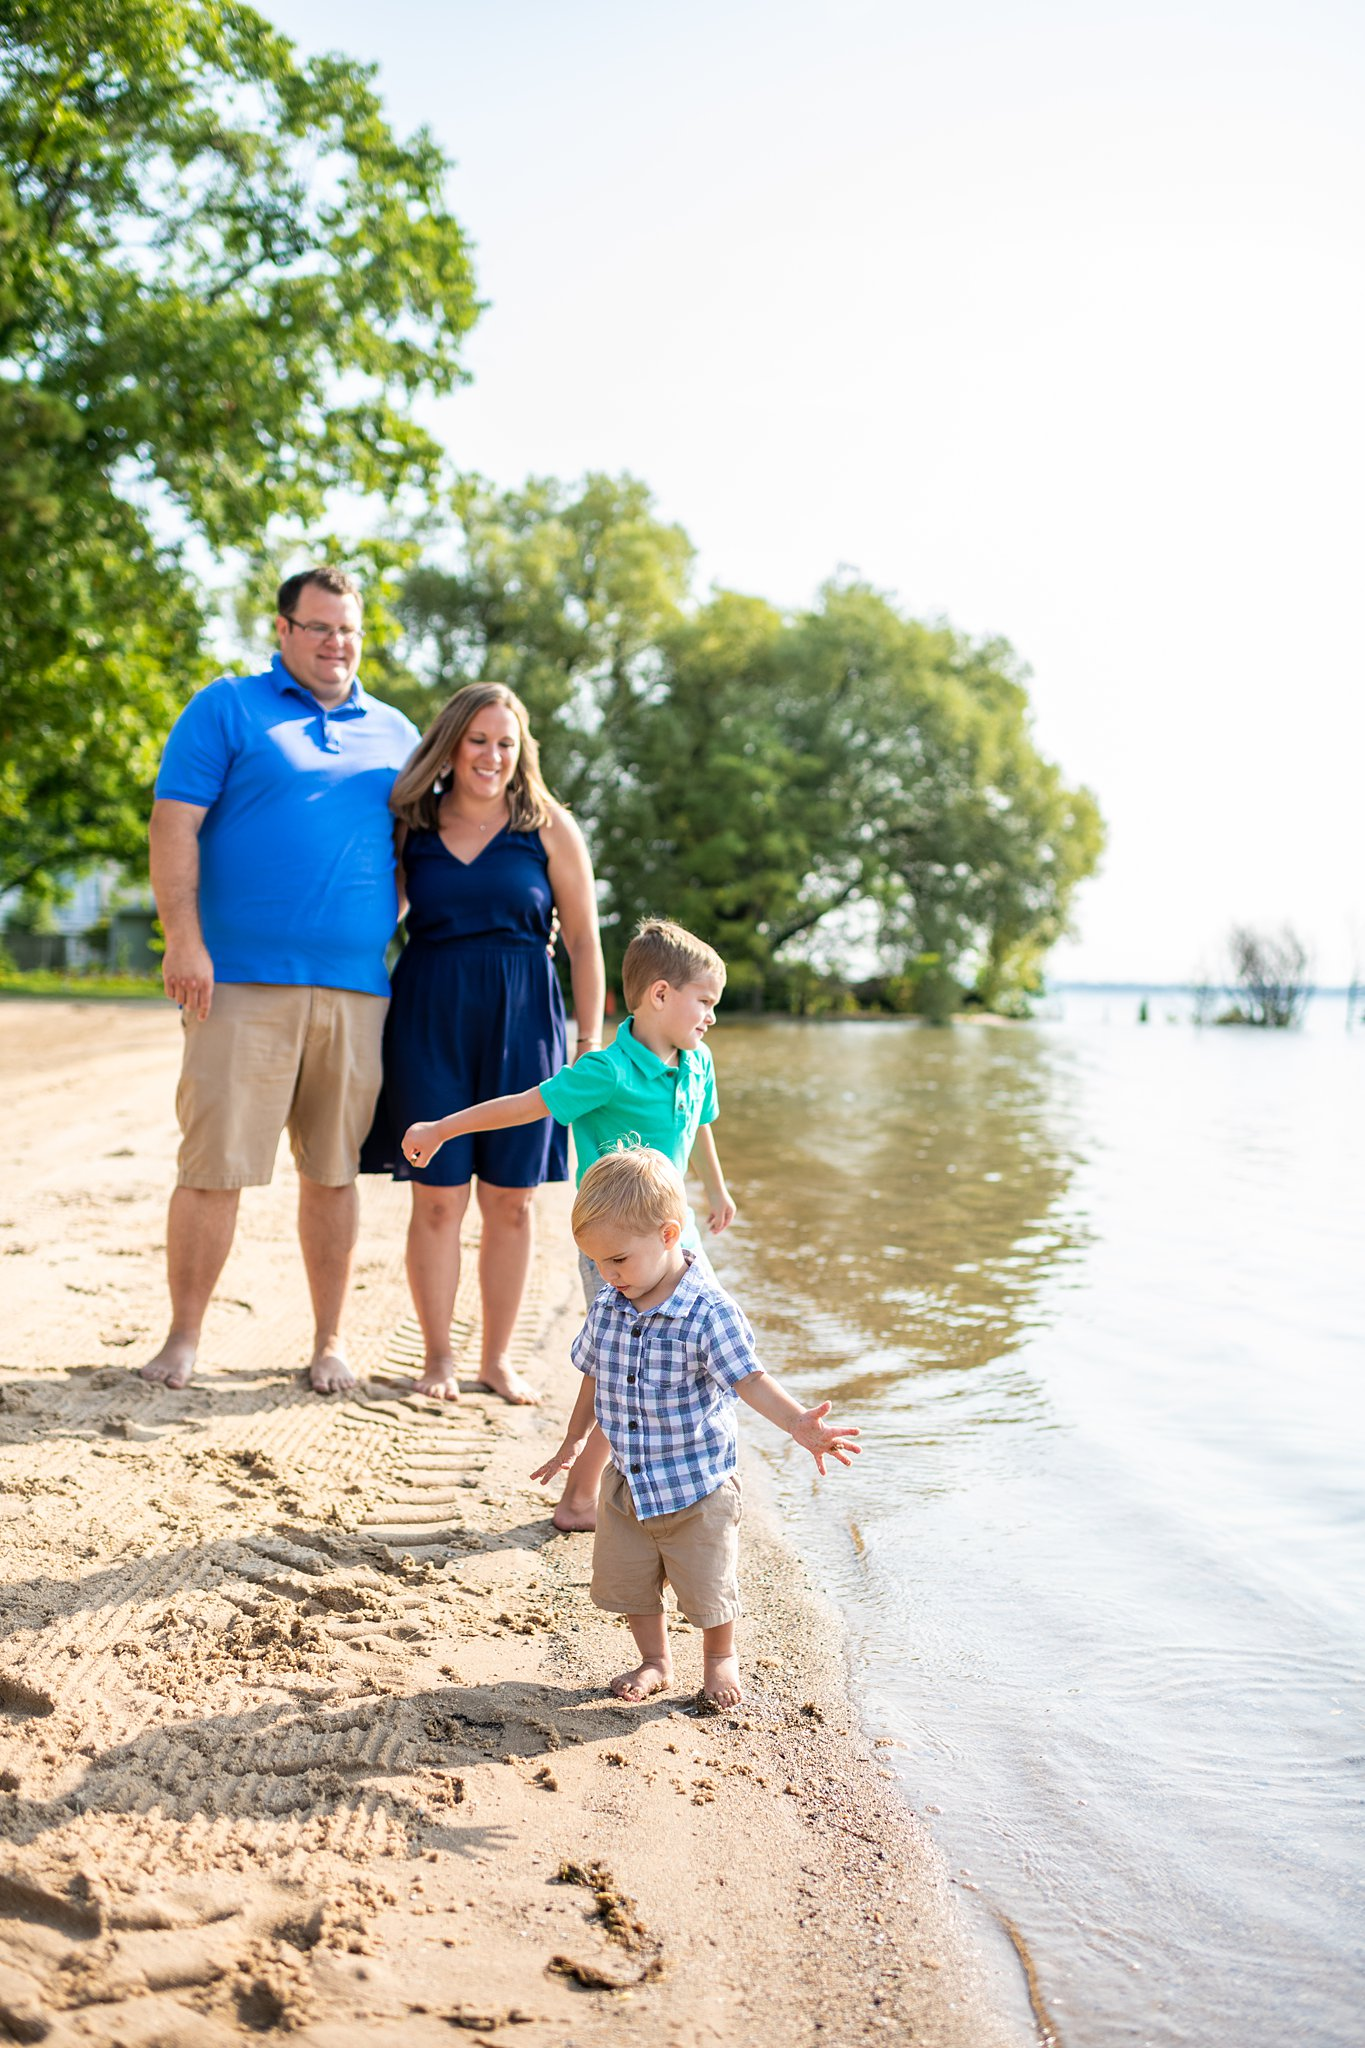 traverse city lifestyle family photography-18.jpg